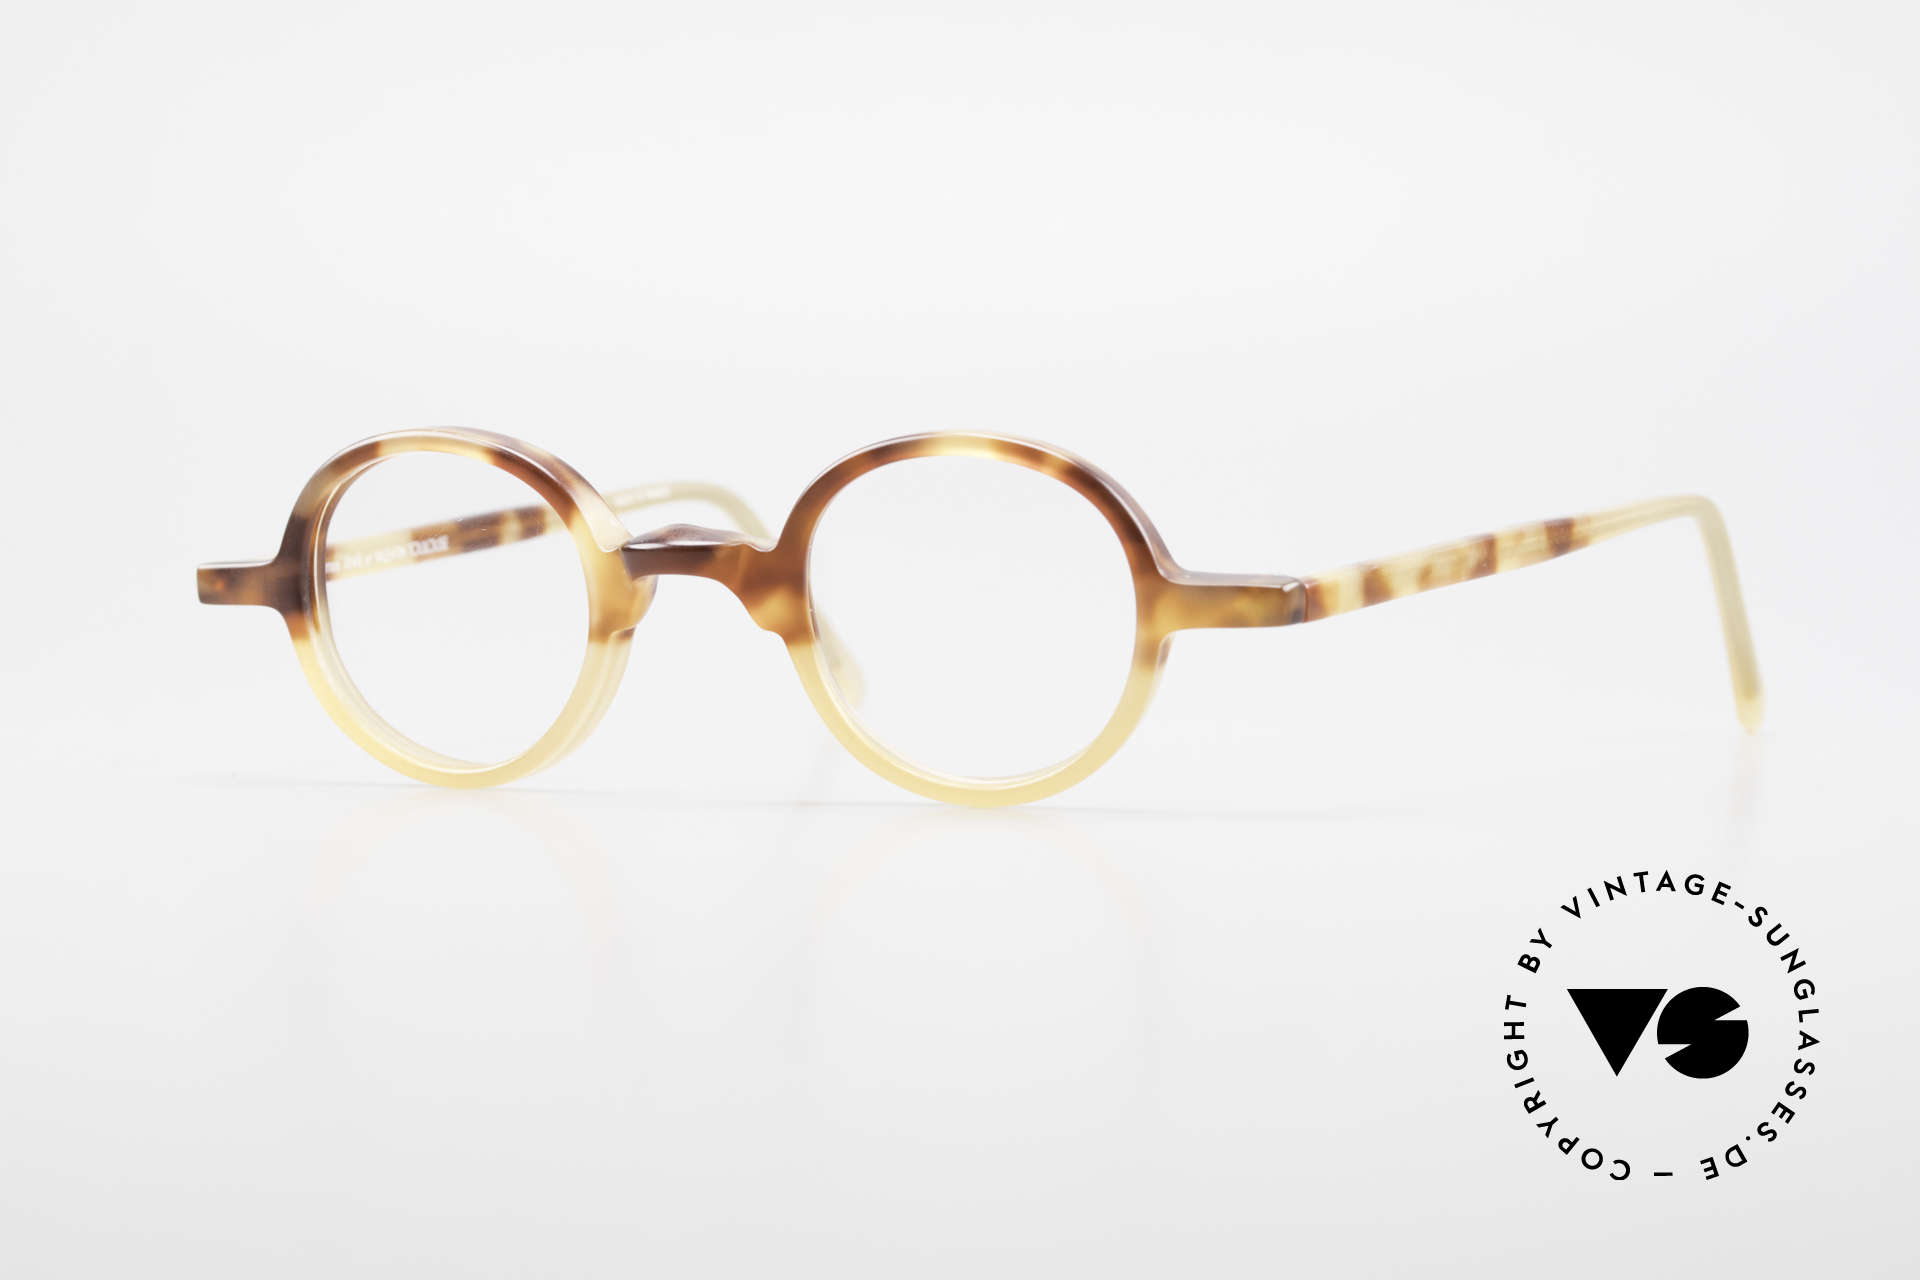 Anne Et Valentin Albert Old Round Vintage 80's Glasses, vintage glasses by 'Anne Et Valentin', Toulouse, Made for Men and Women